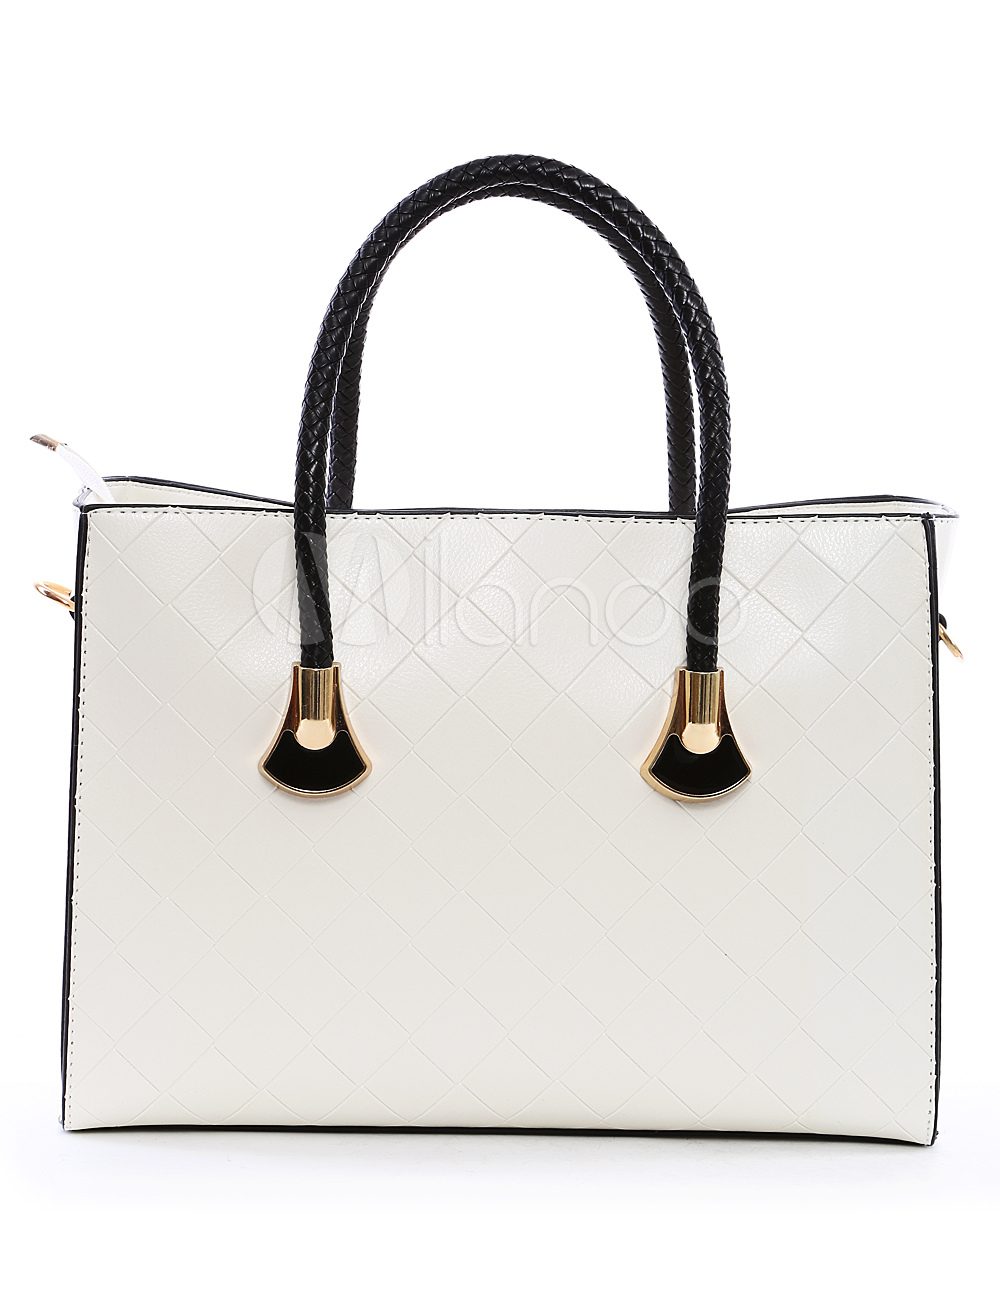 PU Leather Elegant Women's Tote Bag